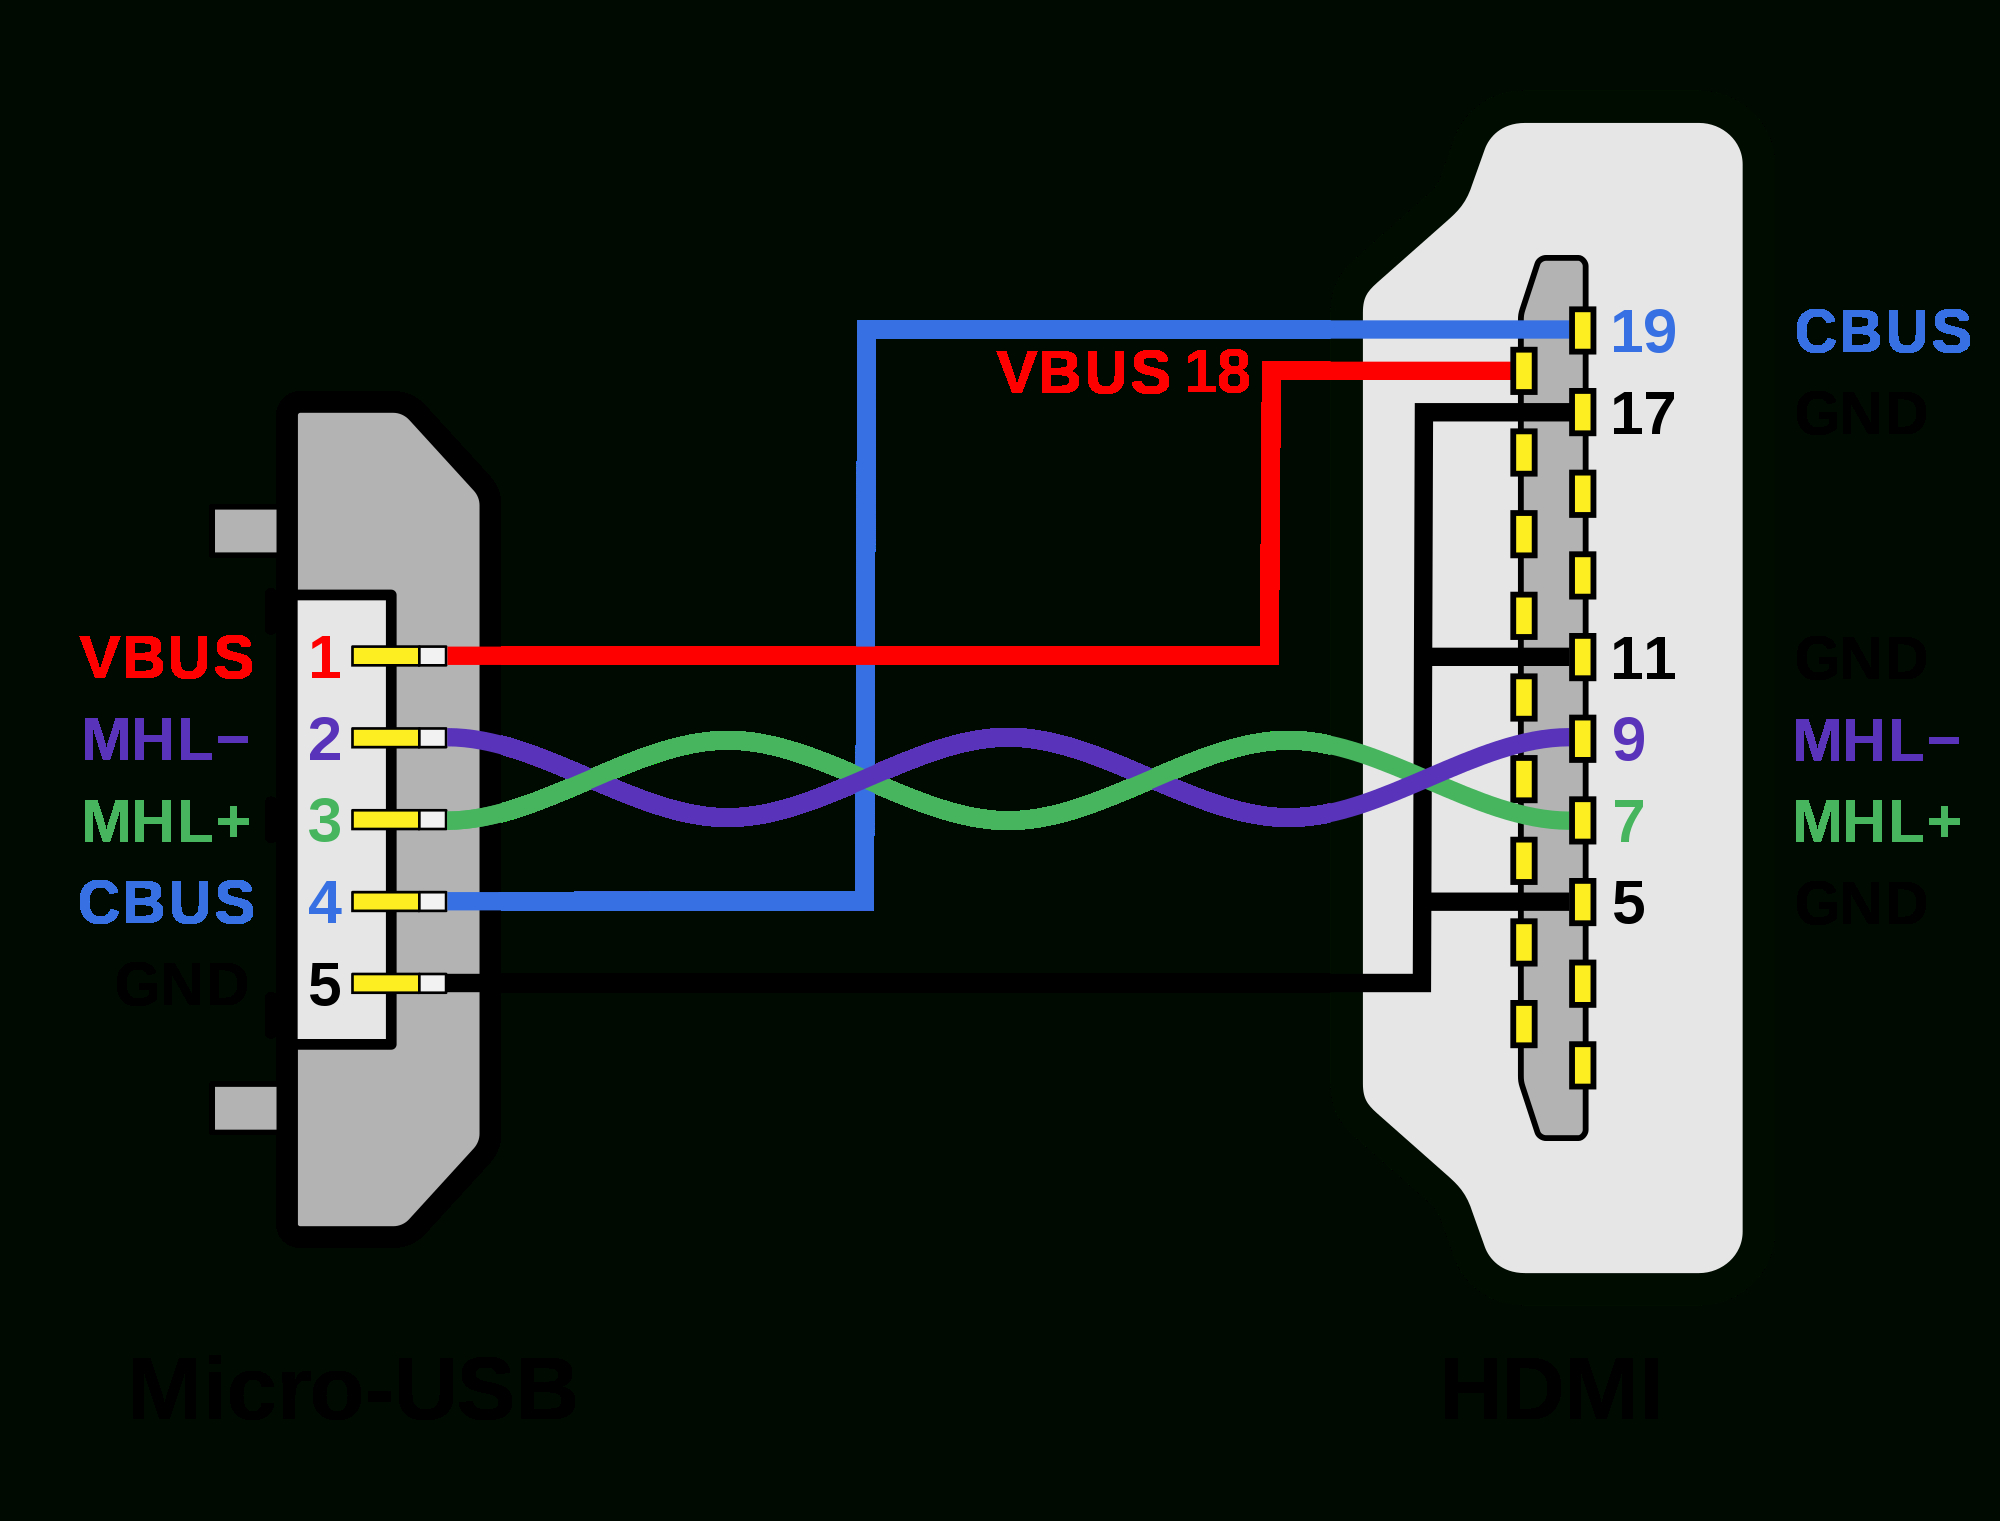 File:mhl Micro-Usb - Hdmi Wiring Diagram.svg - Wikimedia Commons - Usb Cable Explanation Power Wiring Diagram